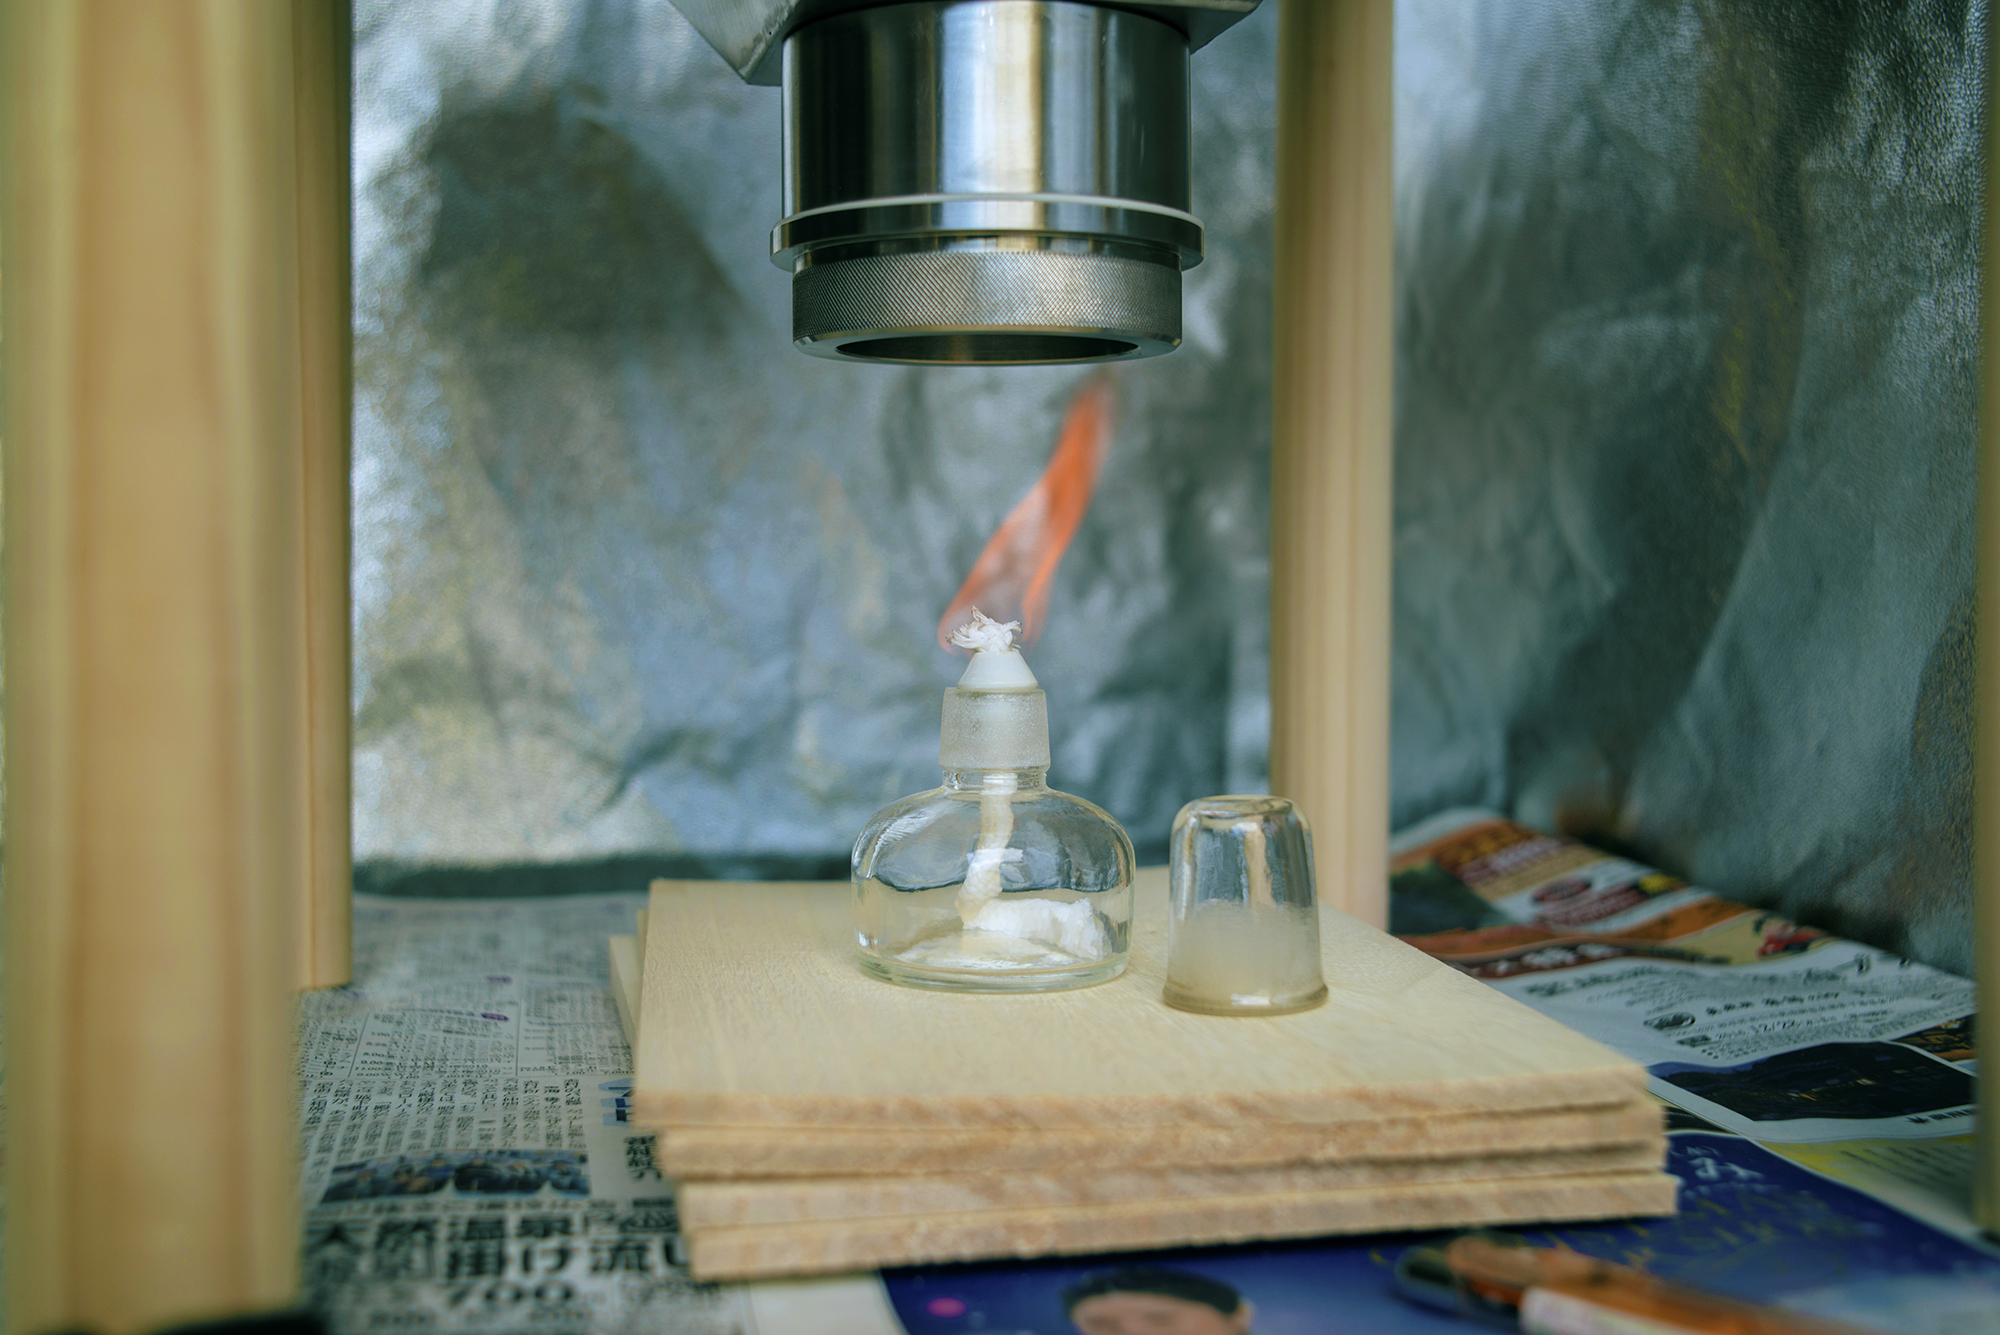 Alcohol lamp to warm up the mercury for developing.  アルコールランプで水銀を温める  알코올 램프에서 수은을 데운다.